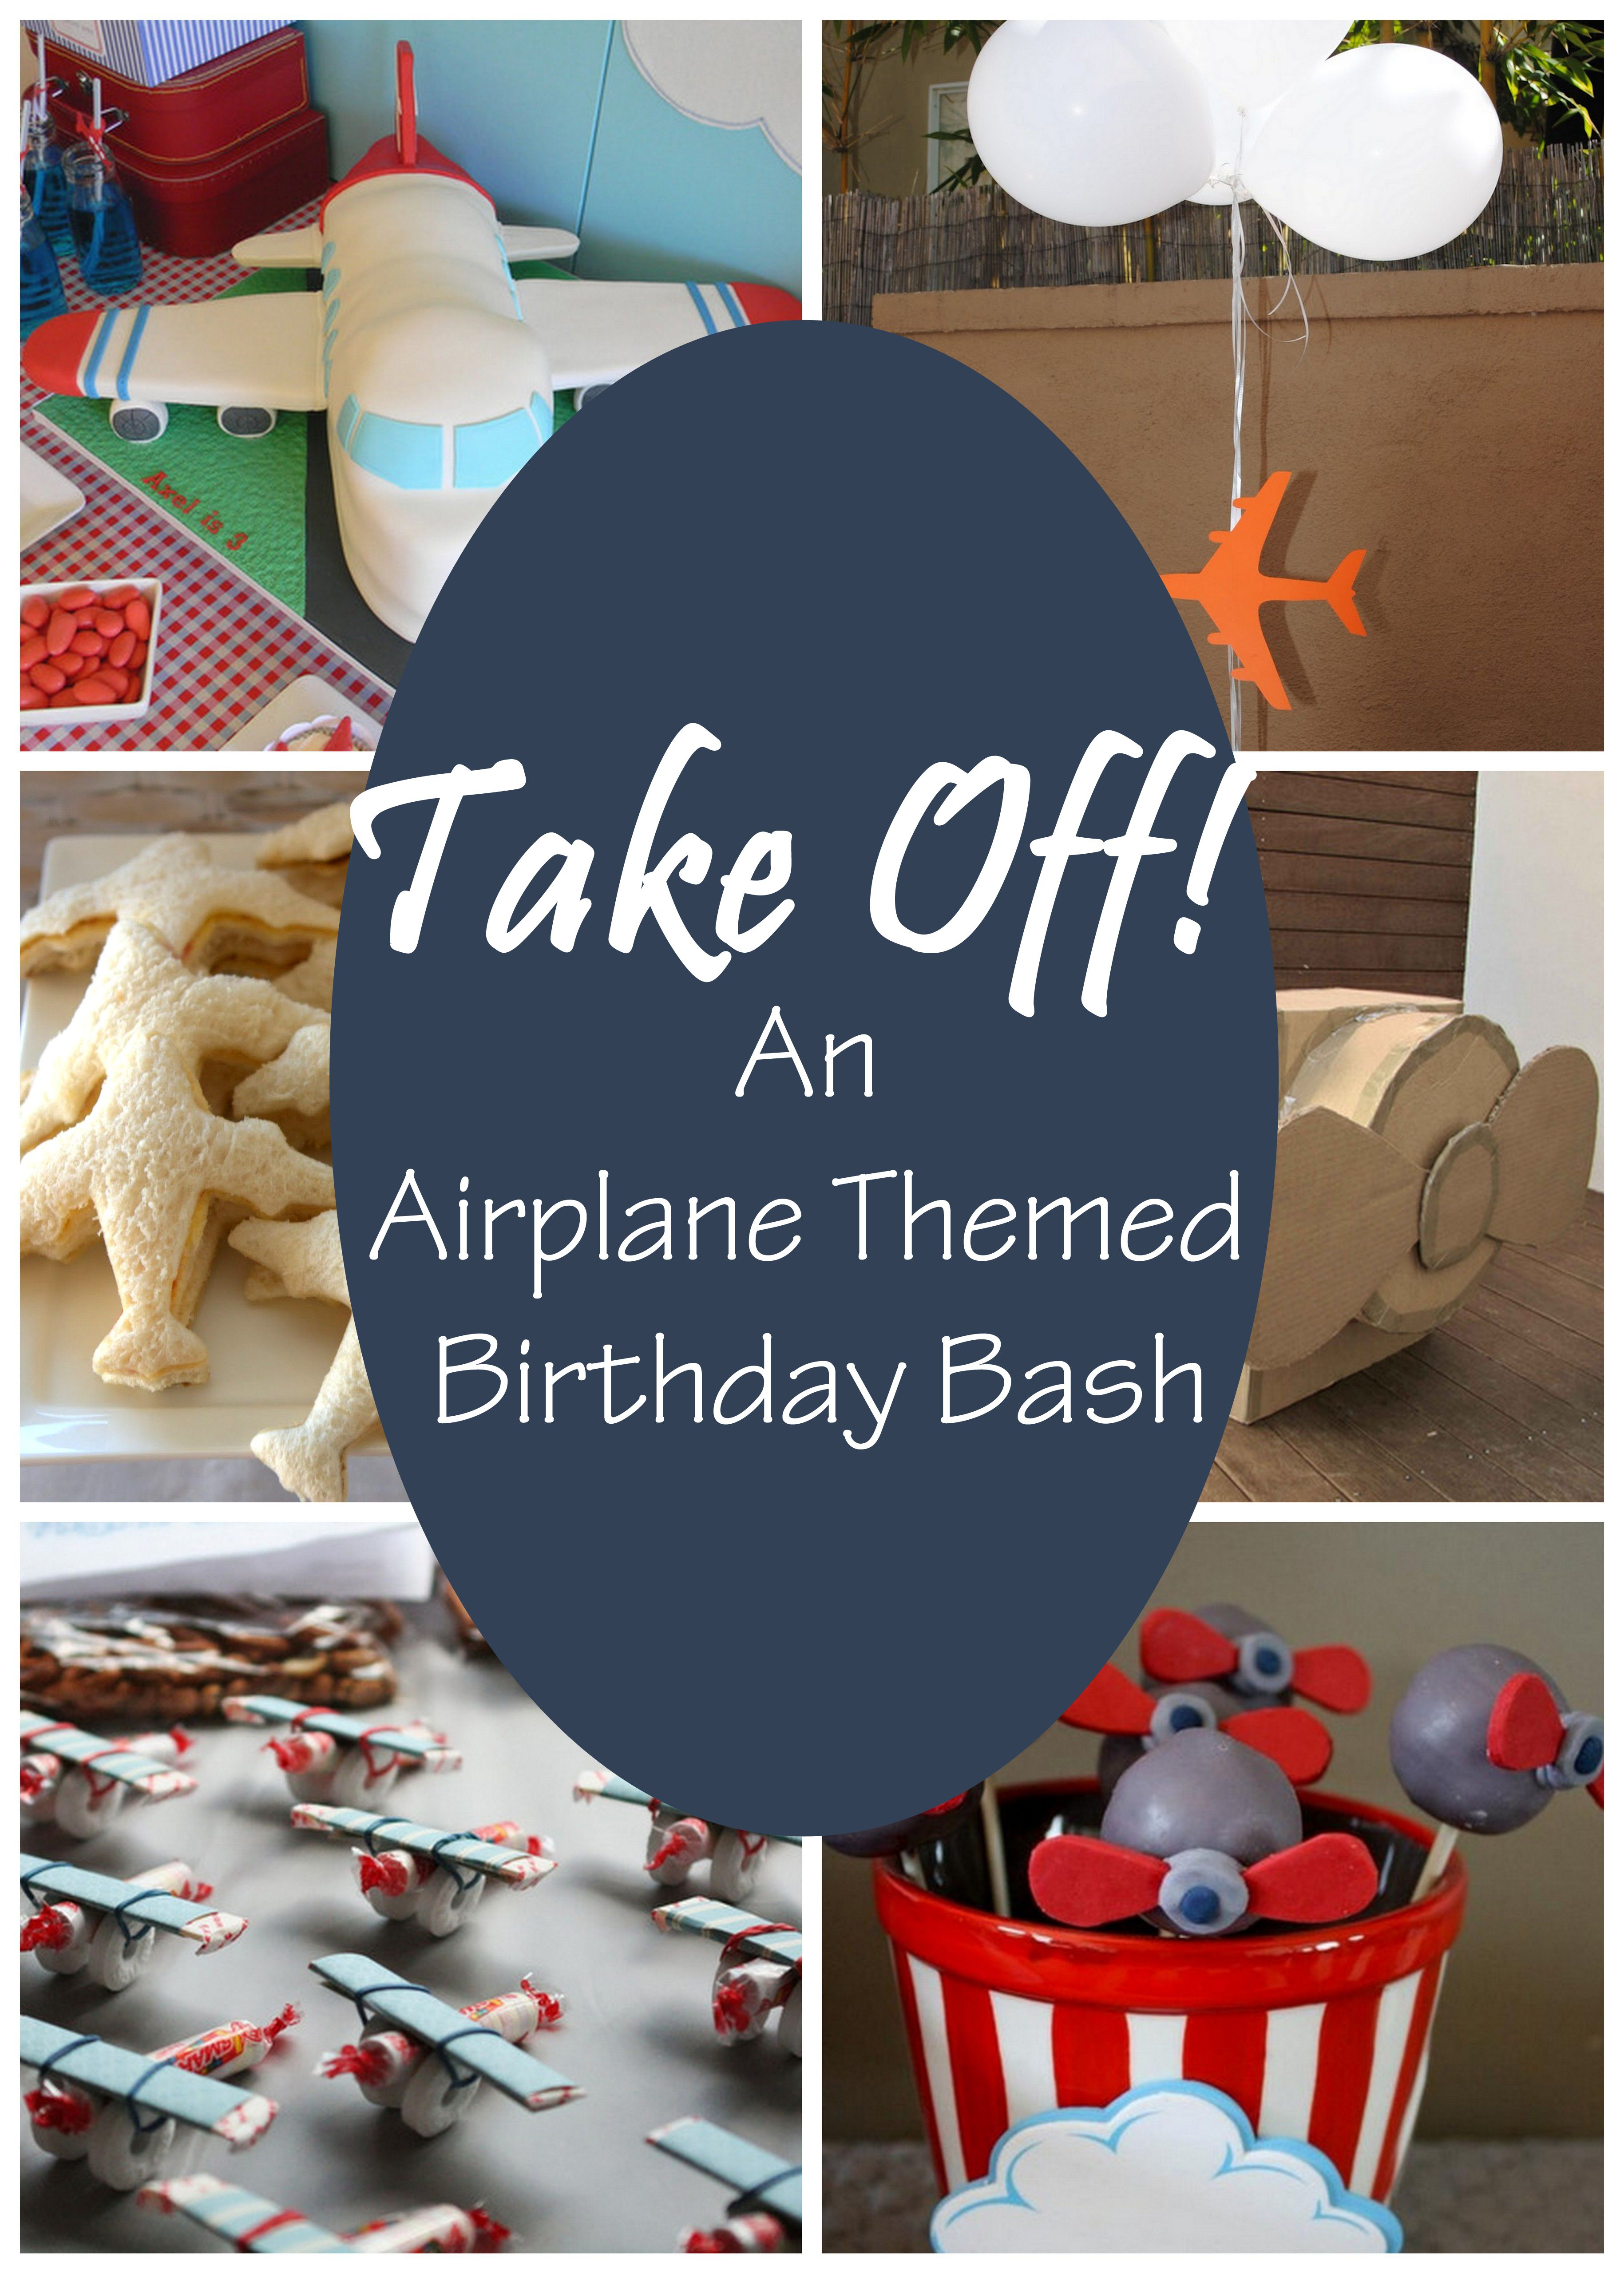 Take Off An Airplane Themed Birthday Bash Airplanes Planes and